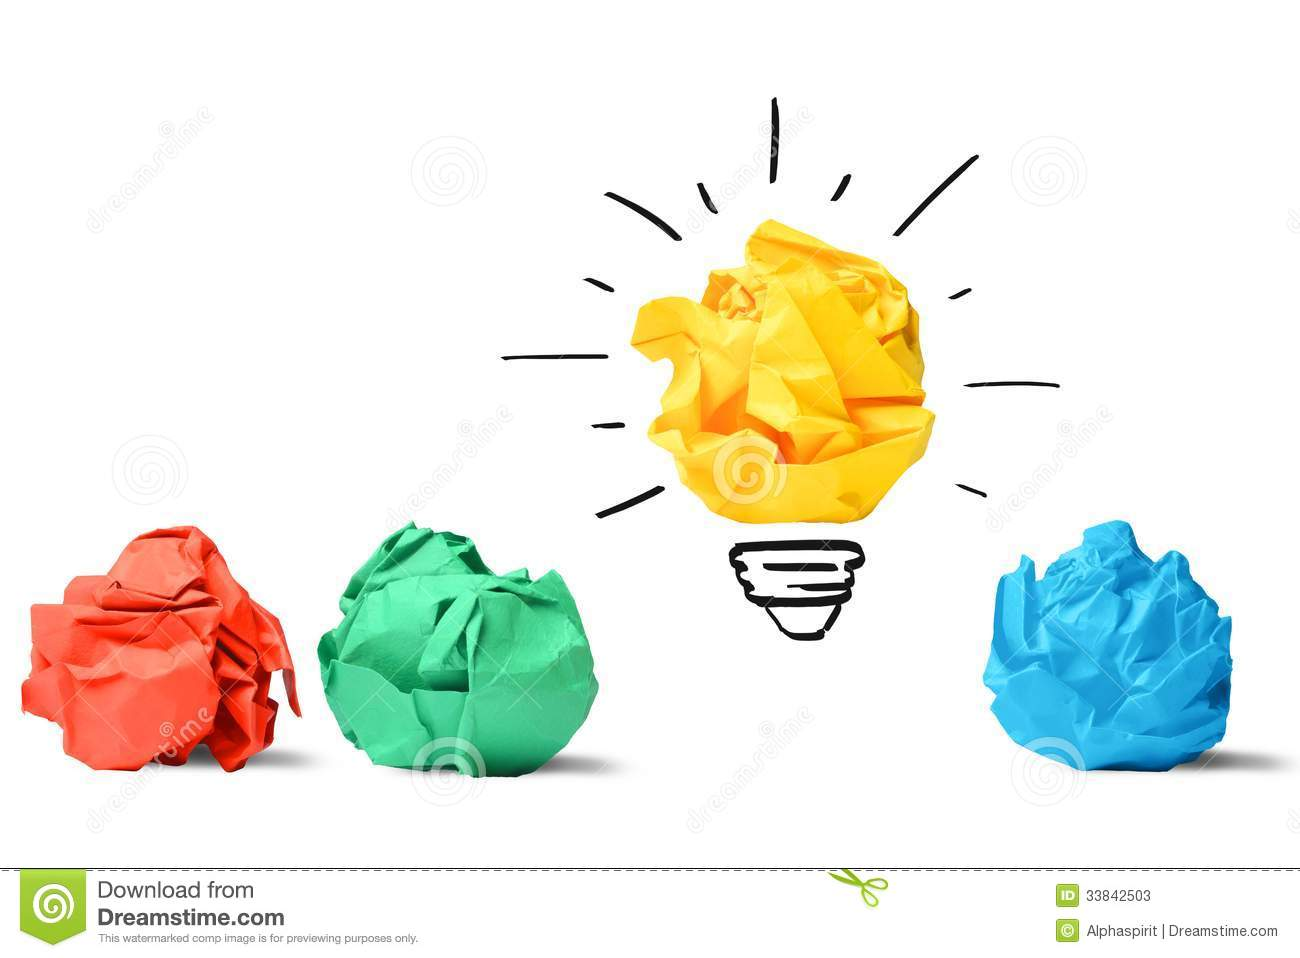 Bright light innovations swot analysis essay